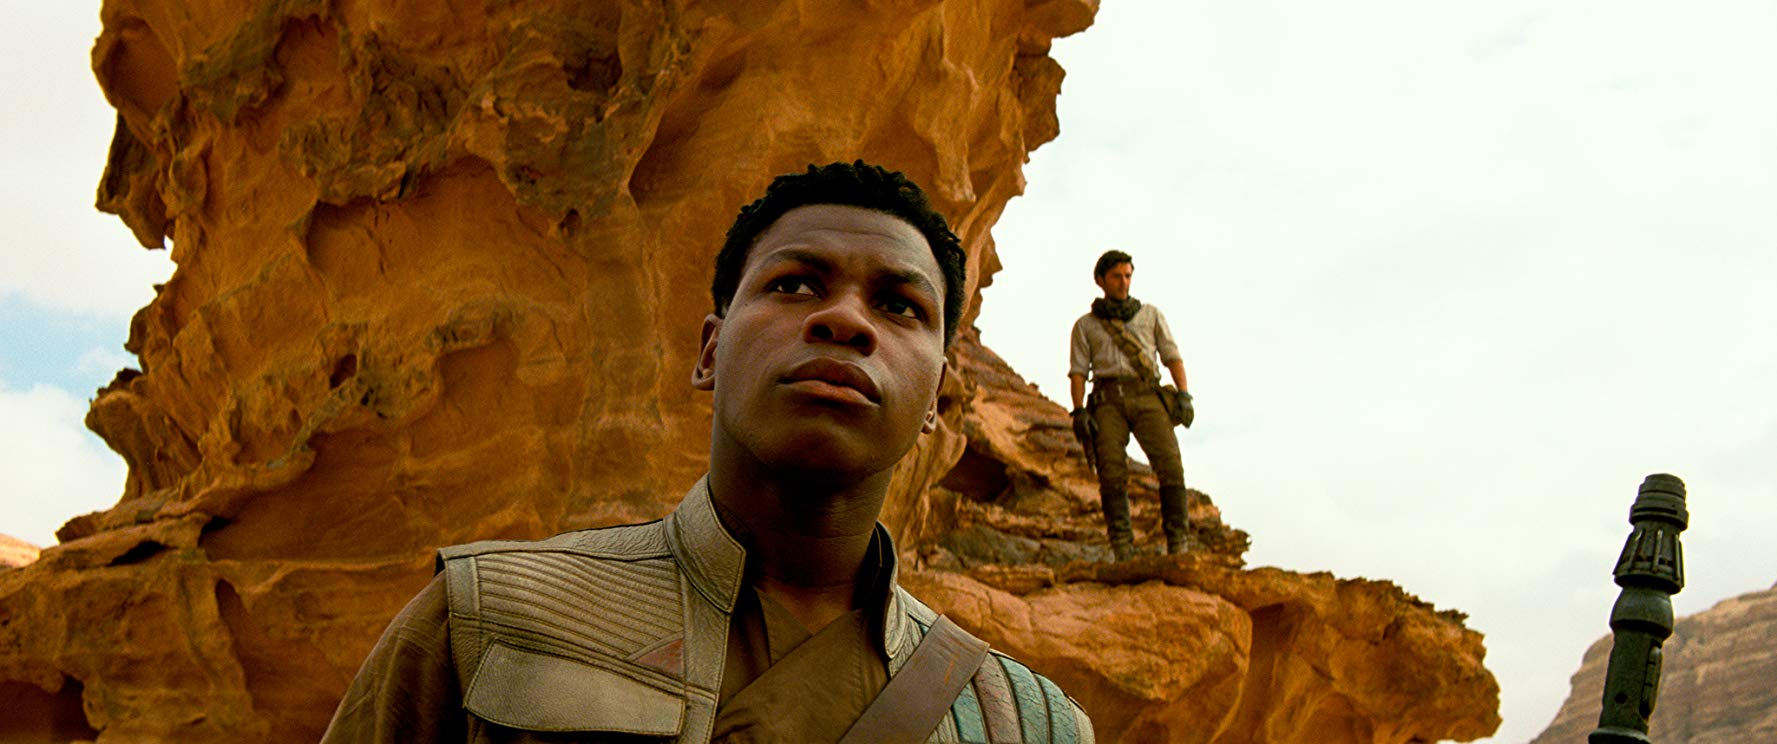 Finn on the desert planet Pasaana